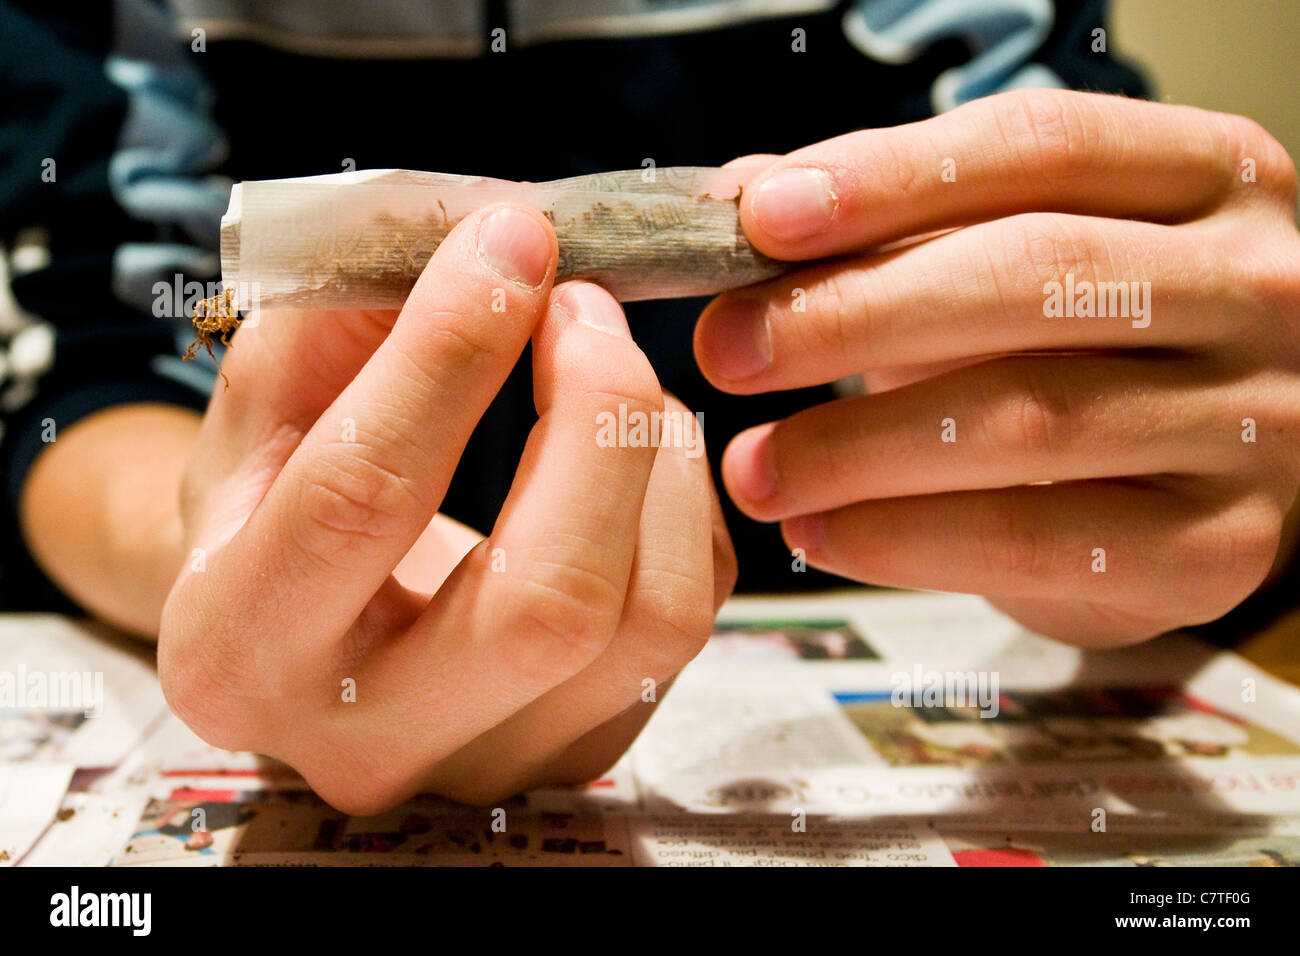 Young man's hands rolling marijuana joint, close up - Stock Image